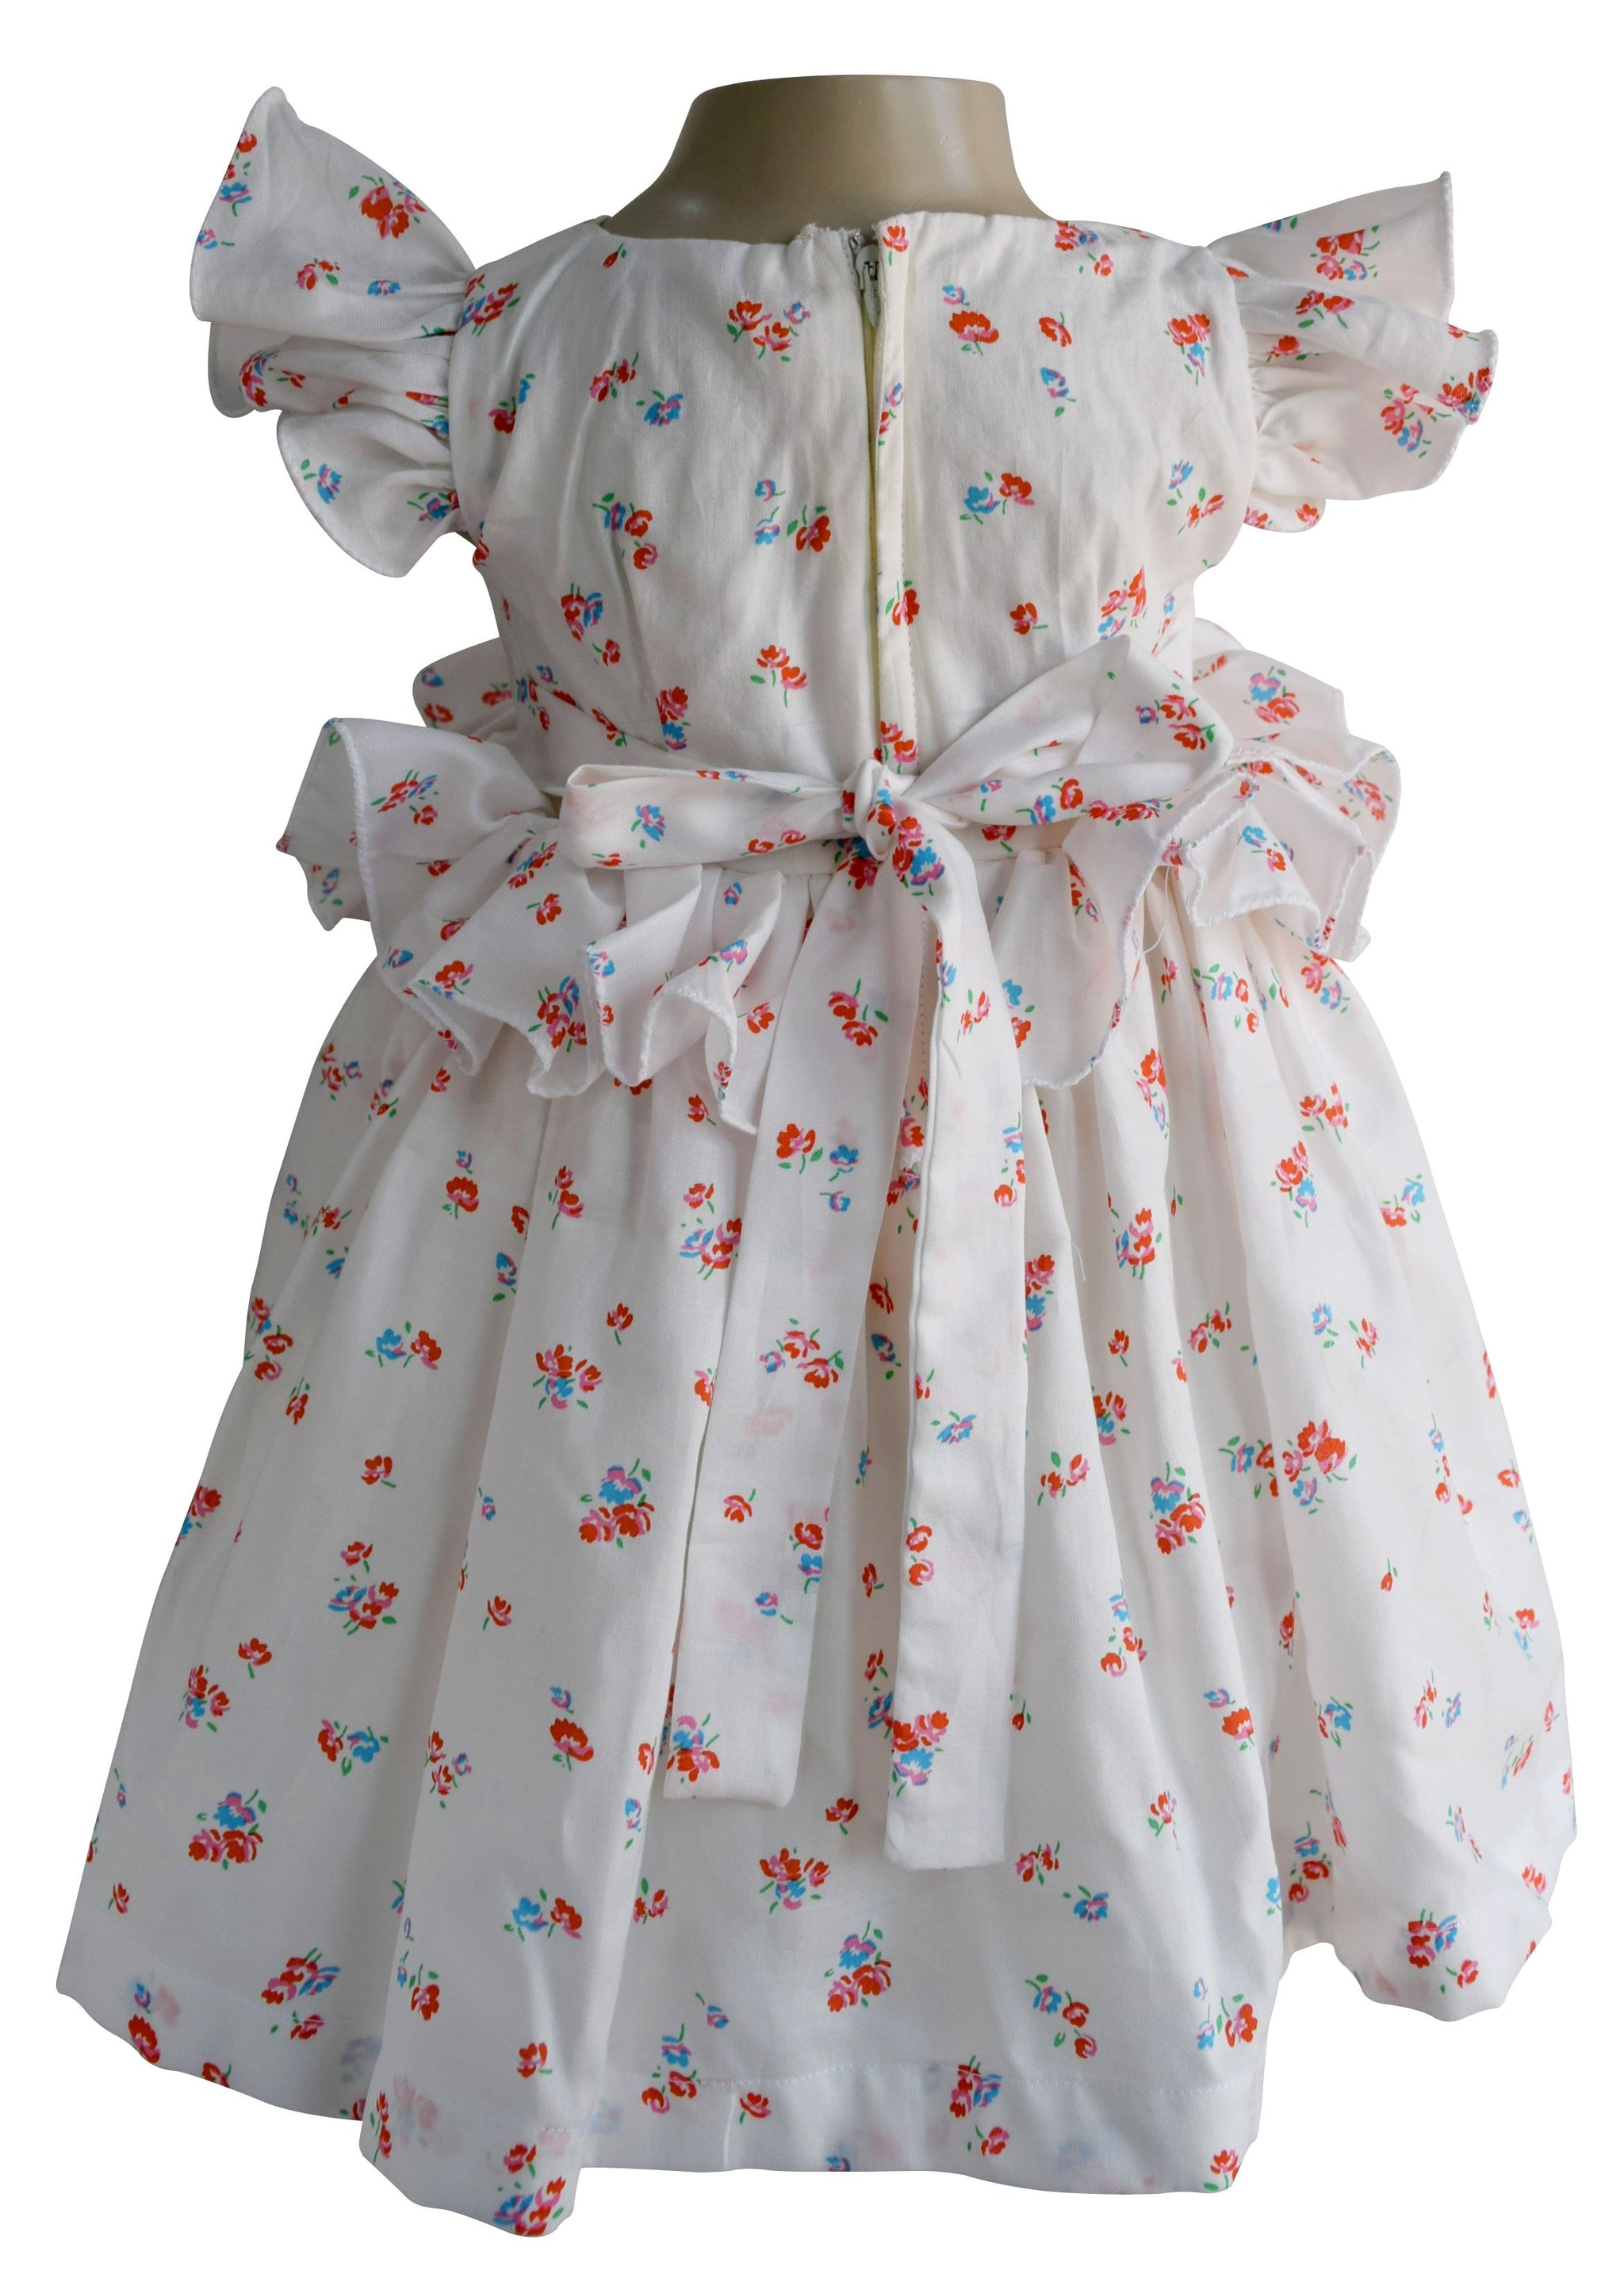 2082f97a52 Cream Floral Ruffled Dress for baby girls